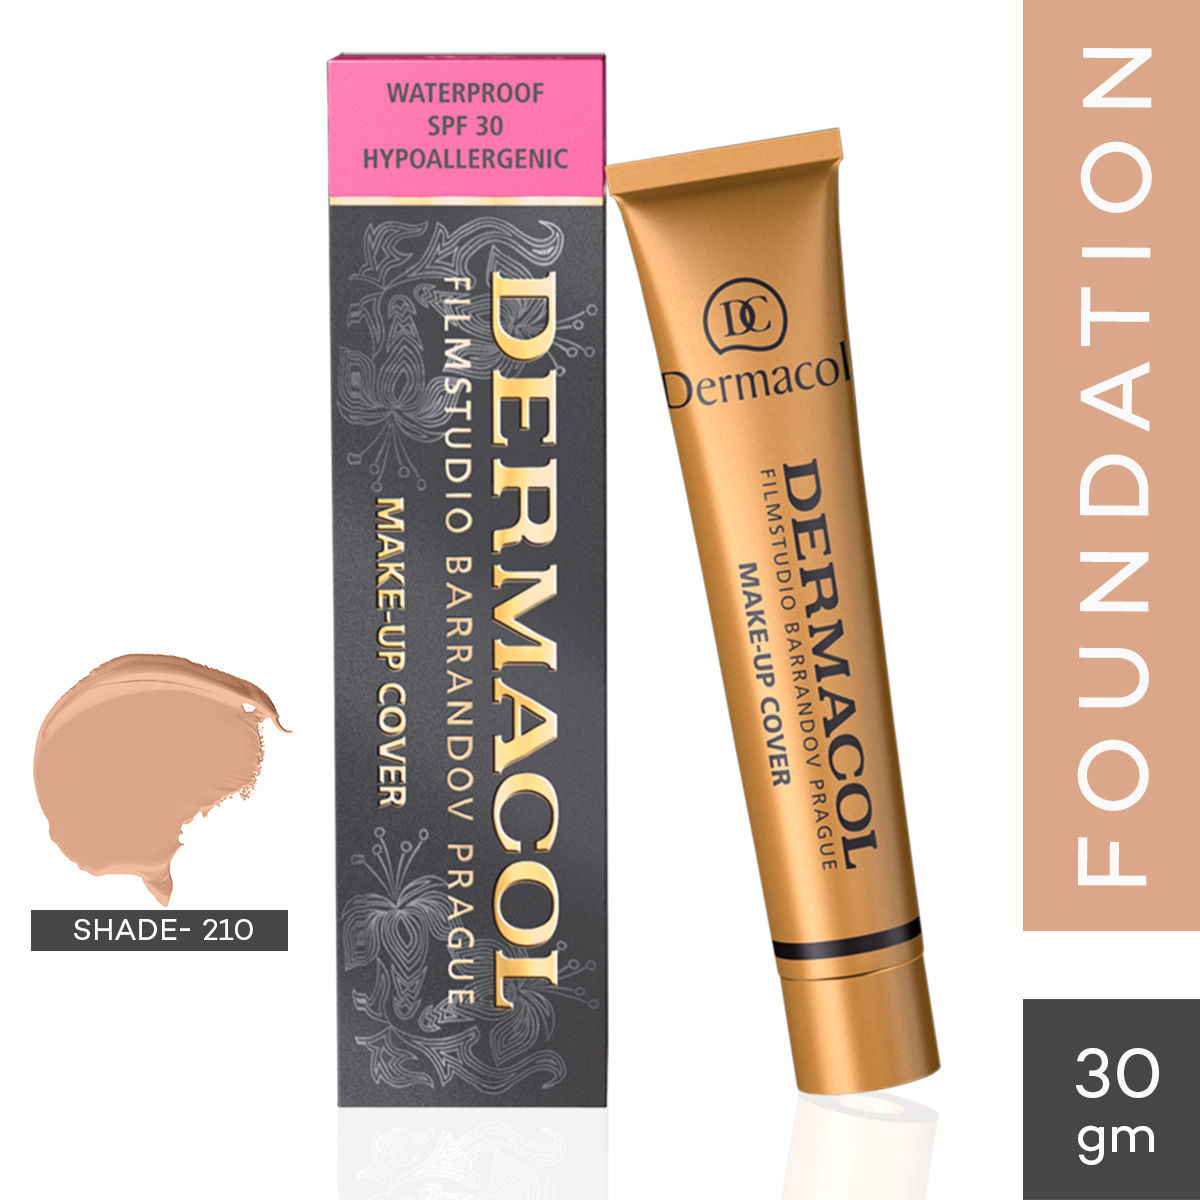 Dermacol Make Up Cover Foundation Spf 30 Buy Dermacol Make Up Cover Foundation Spf 30 Online At Best Price In India Nykaa